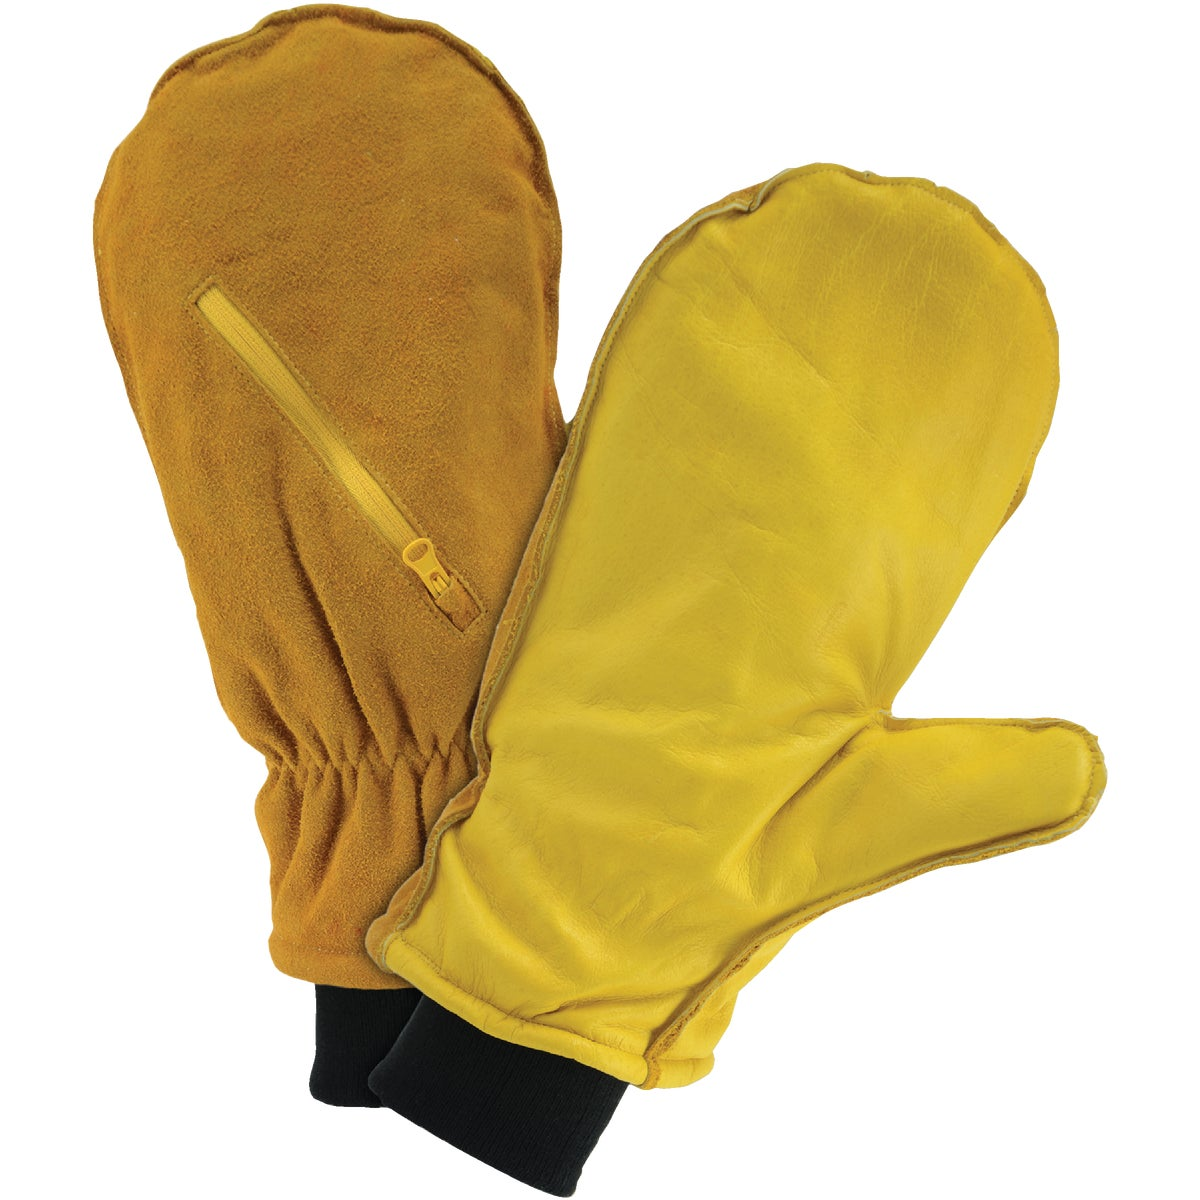 LG LINED LEATHER MITTEN - 1425L by Wells Lamont